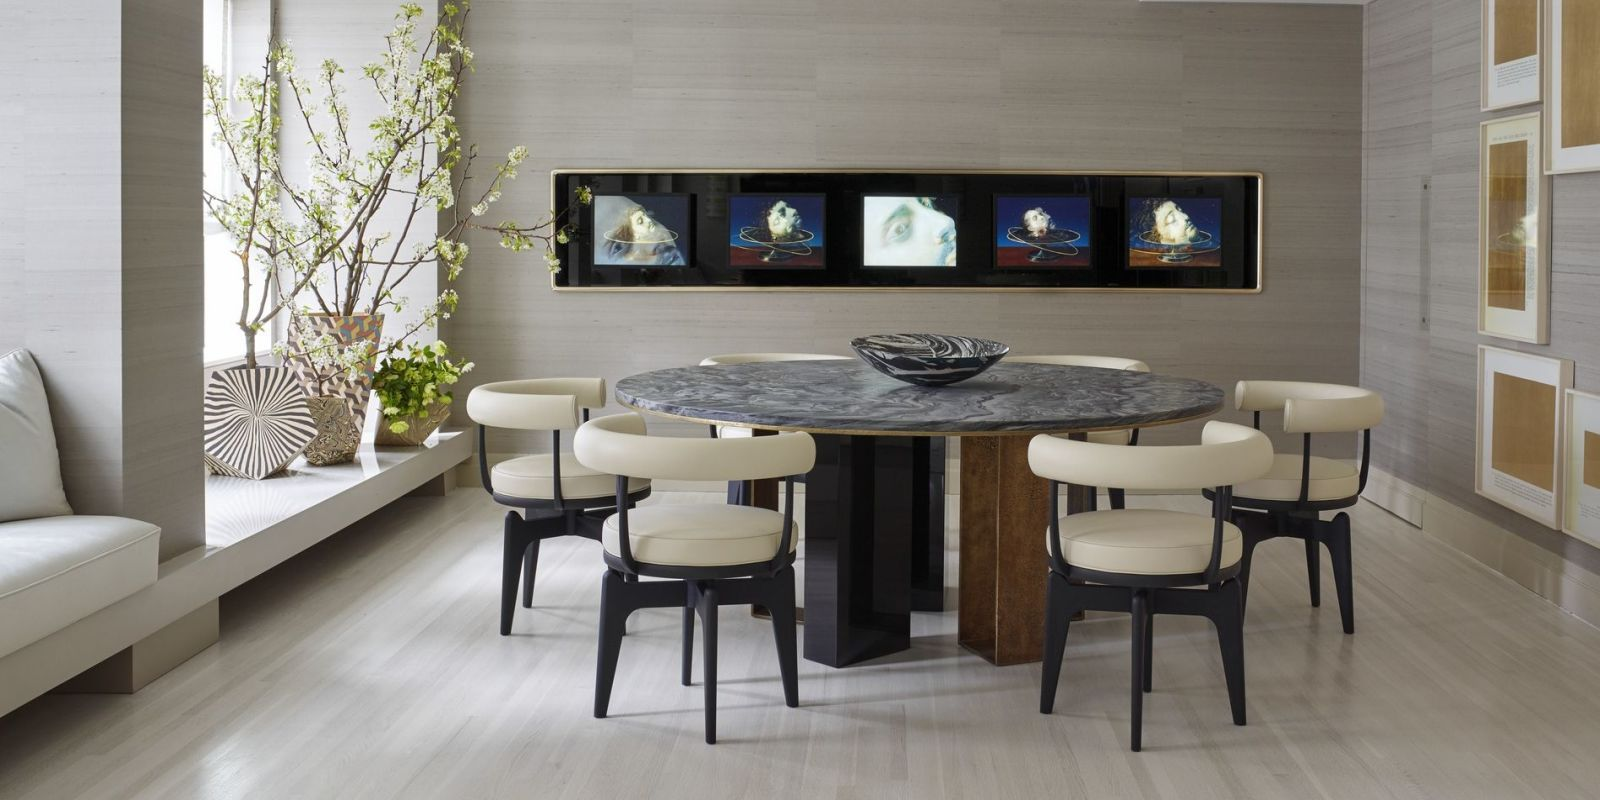 25 modern dining room decorating ideas contemporary dining room rh elledecor com modern dining room furniture for small spaces modern dining room furniture johannesburg